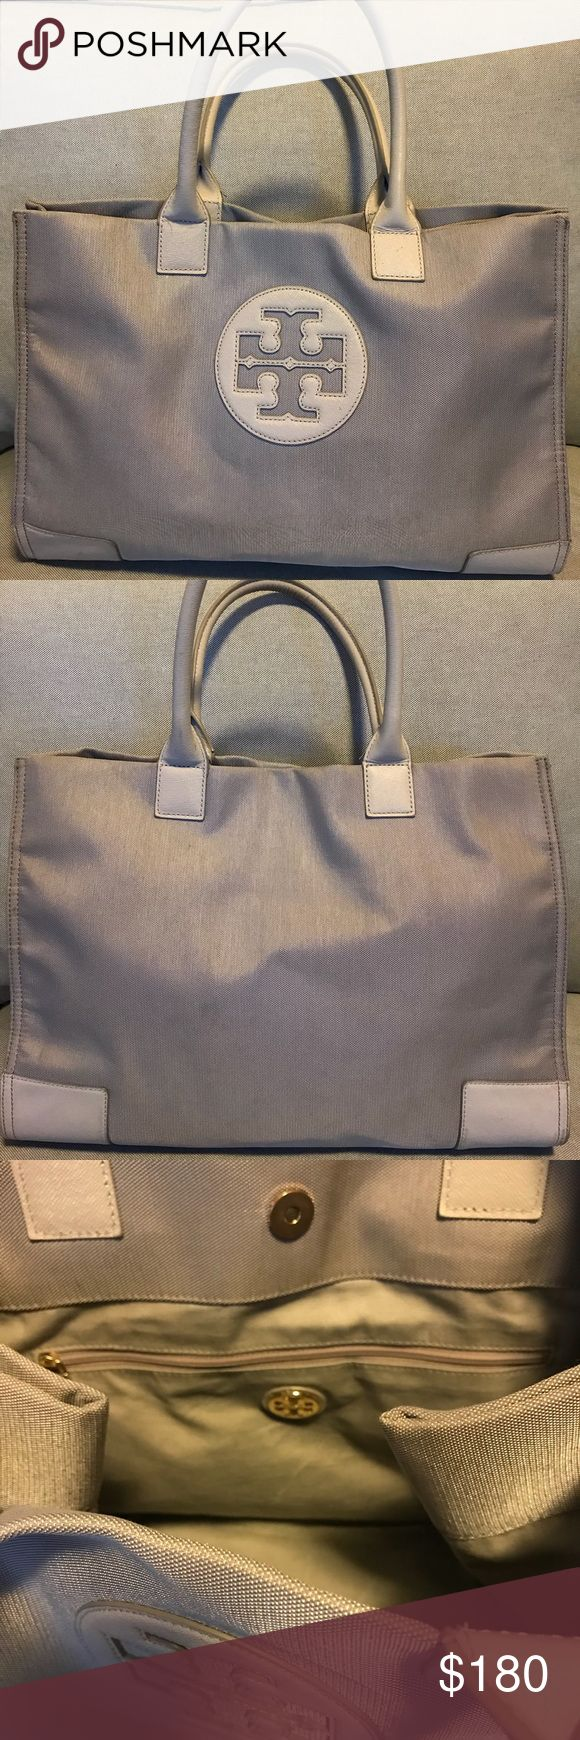 Tory Burch Ella Metallic Nylon Tote Bag in Khaki Classic Tory Burch Ella bag with magnetic snap closure and snap button sides. This bag is spacious and fits a laptop. Bag is in perfect condition and comes with dust bag. Tory Burch Bags Totes